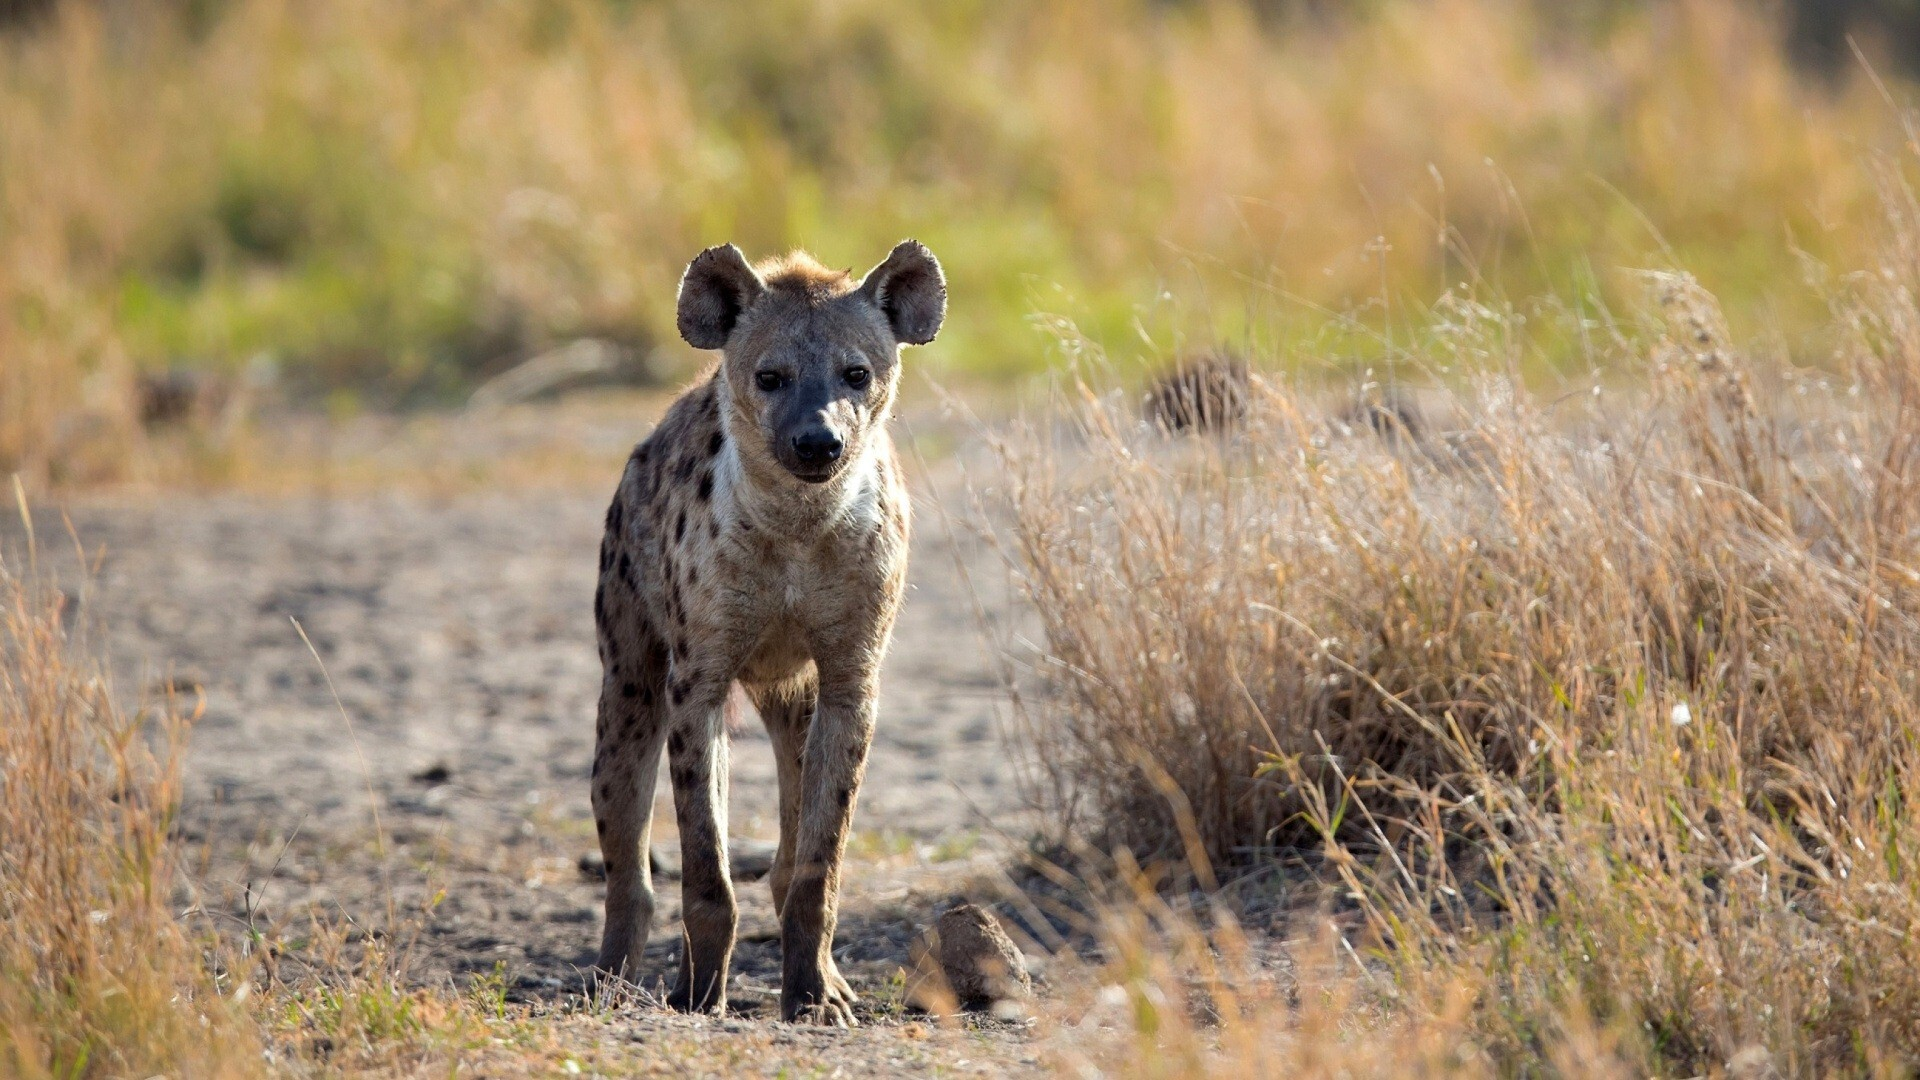 Image of: Wild Dog Spotted Hyena In Jungle Hd Wild Animal Photo Hd Nice Wallpapers Spotted Hyena In Jungle Hd Wild Animal Photo Hd Wallpapers